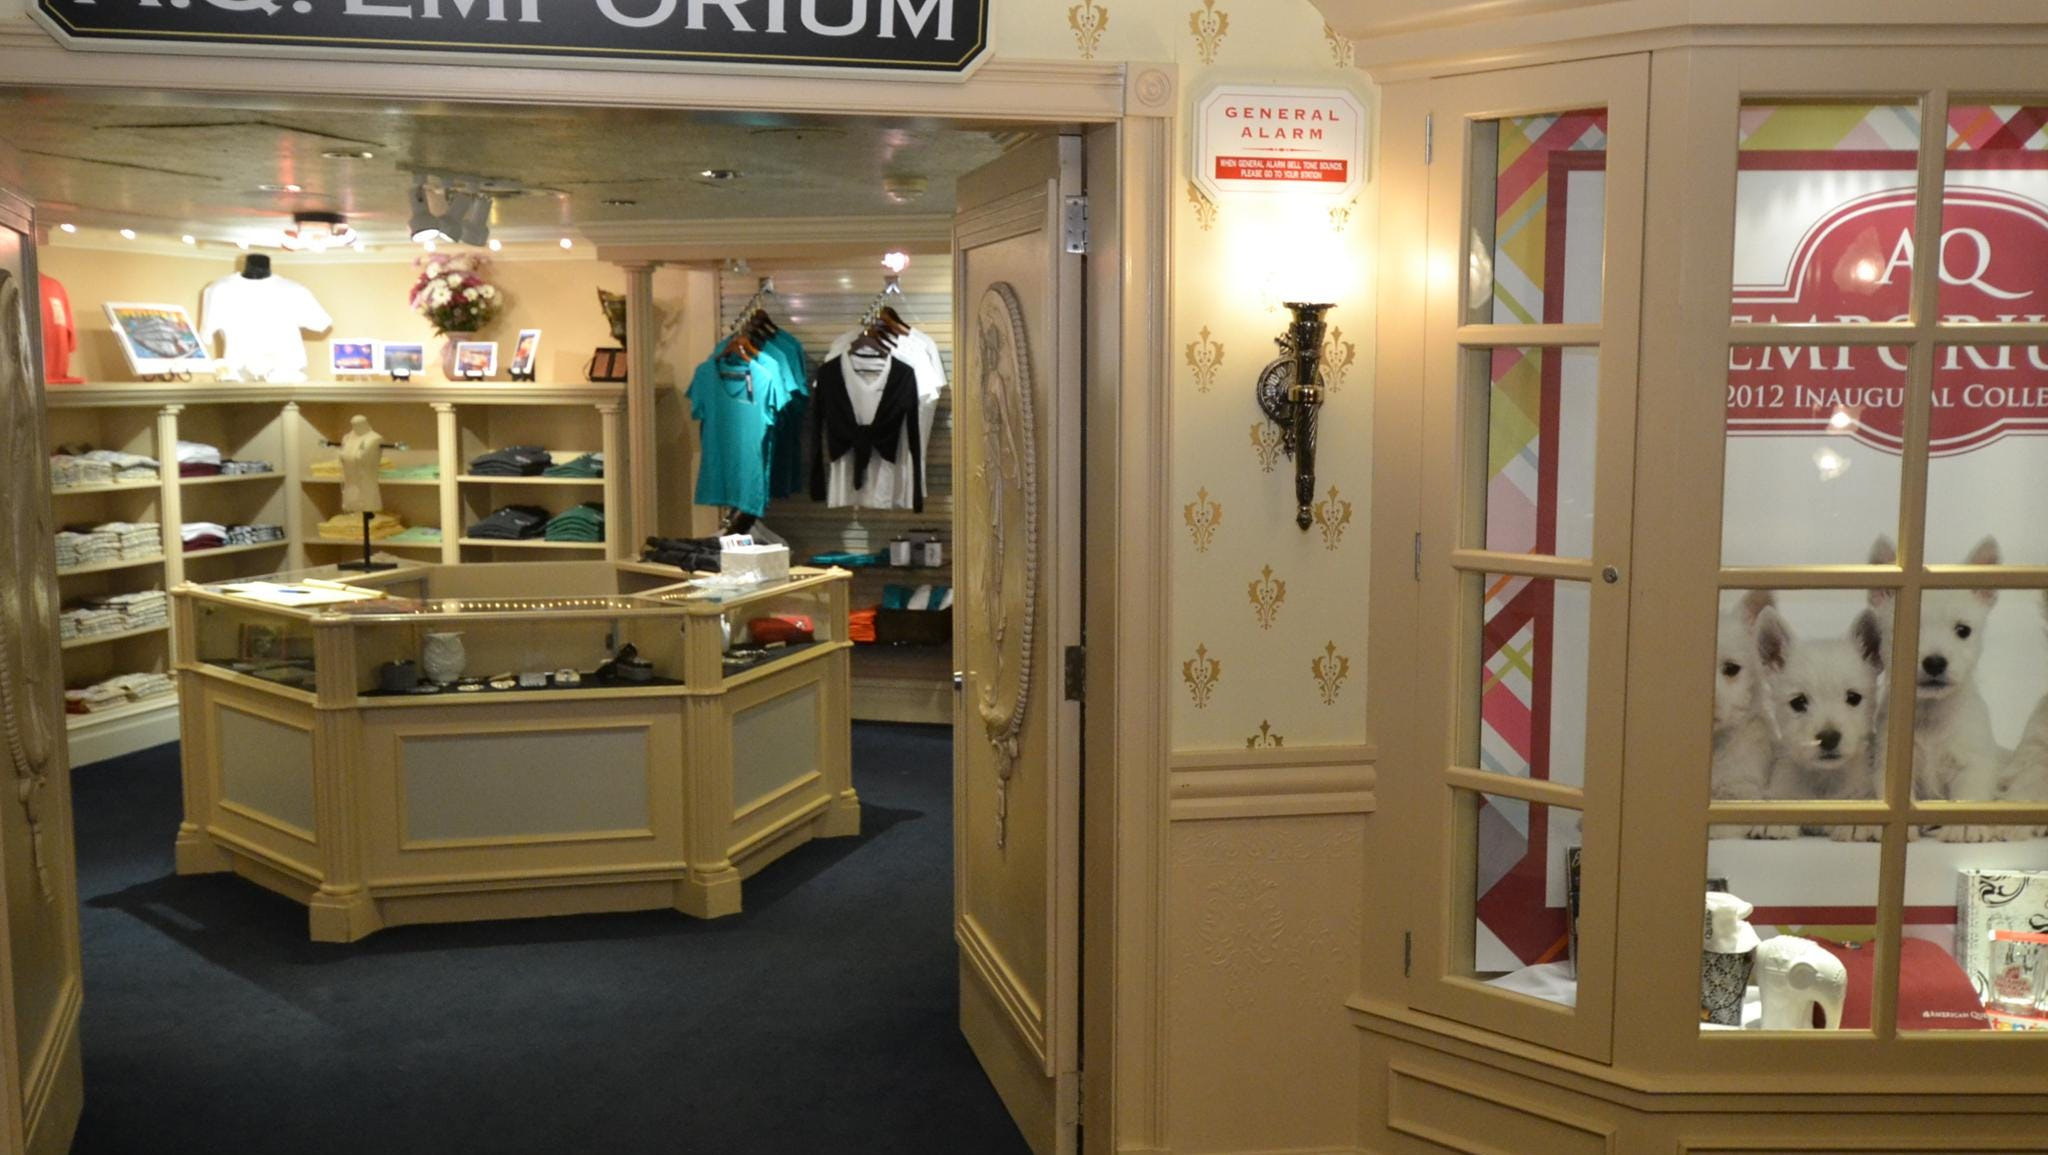 The vessel's A.Q. Emporium store sells American Queen memorabilia and clothing.